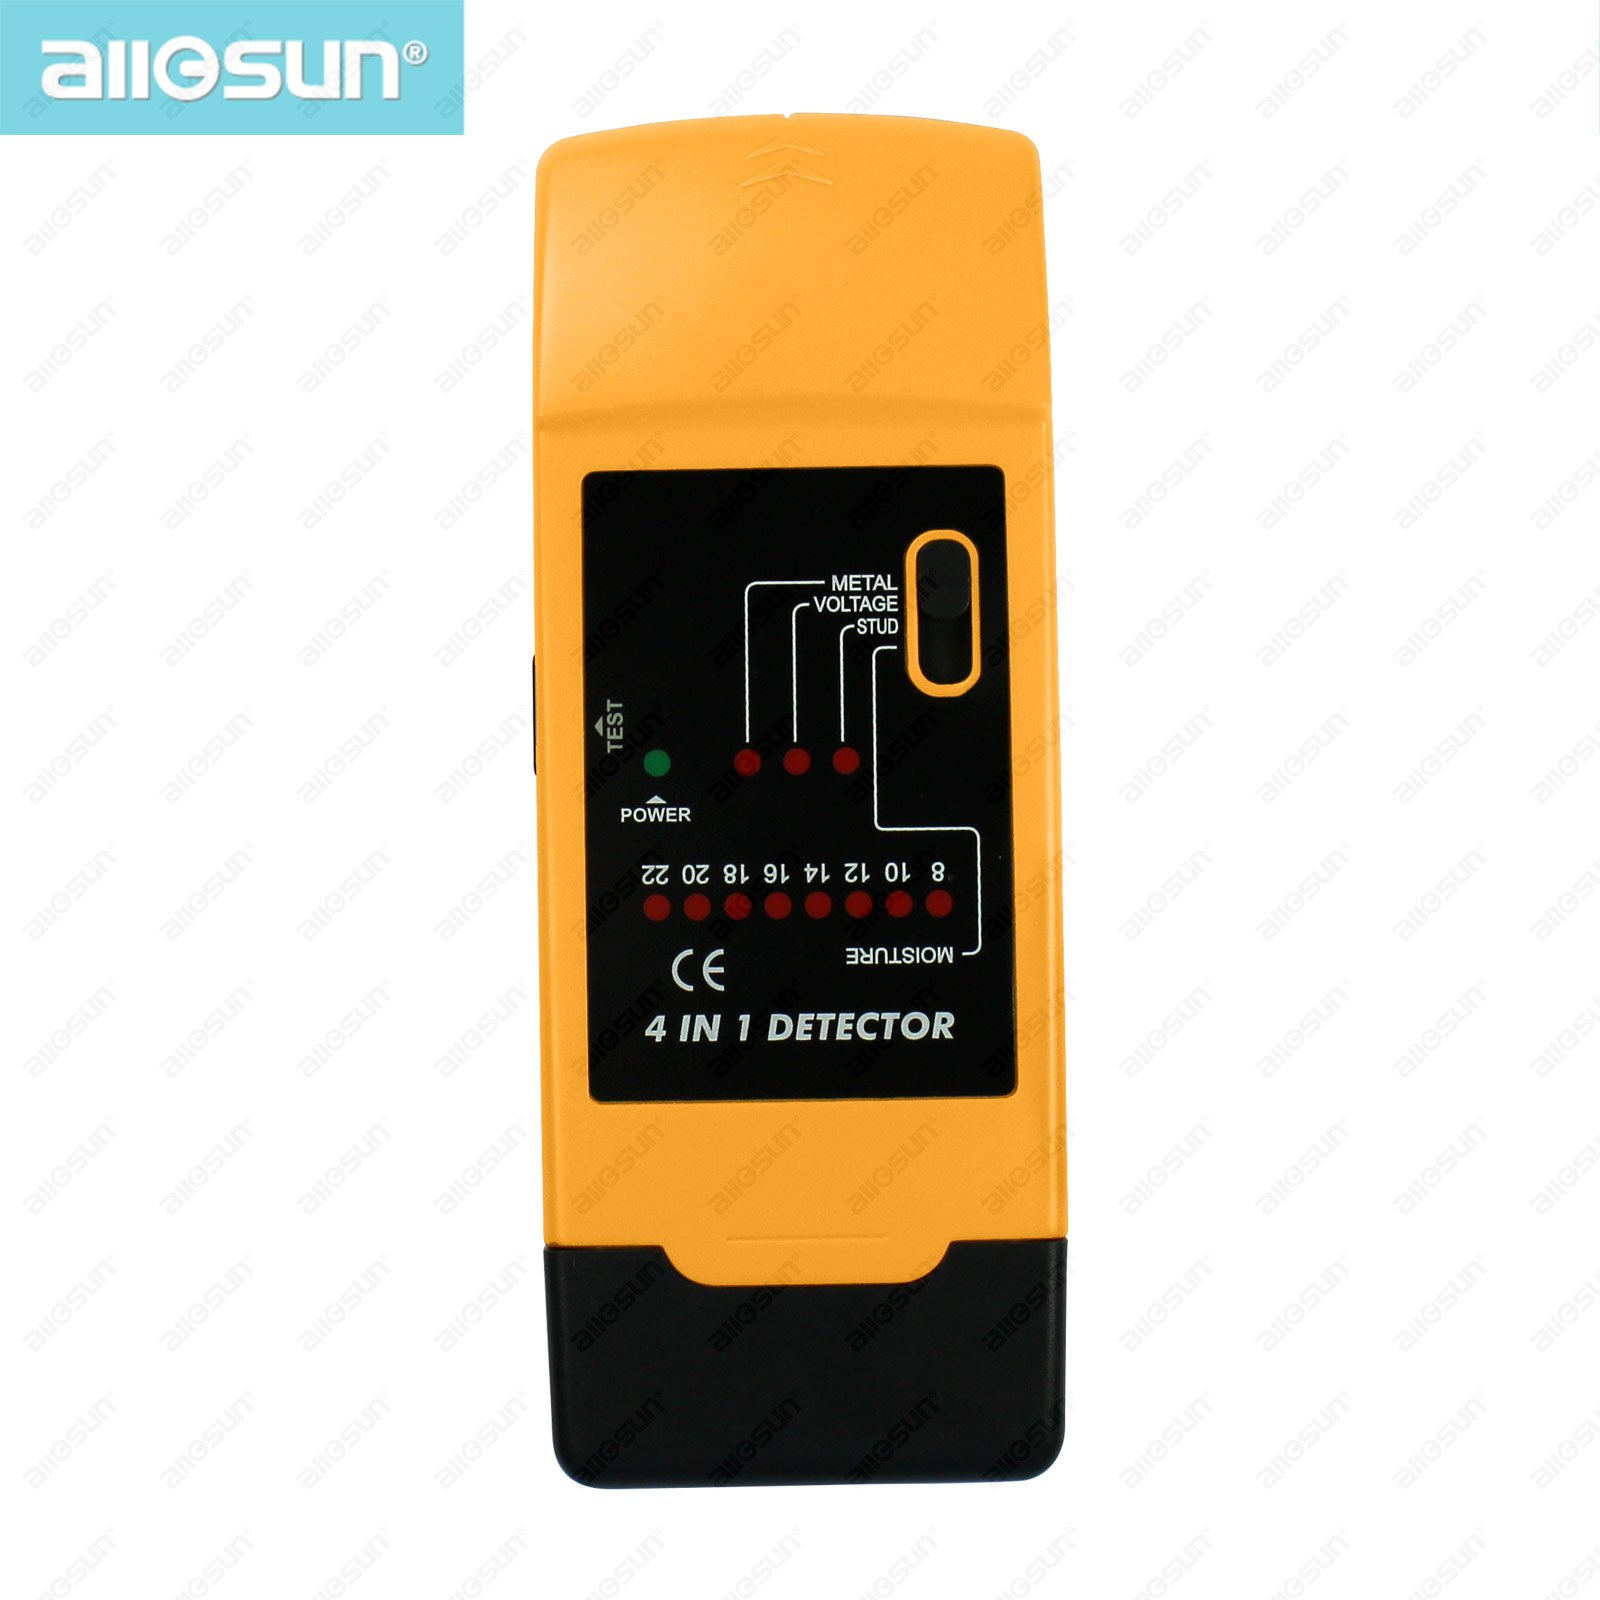 all-sun TS69 4 in 1 AC wires moisture detector bamboo/wood 90-250V at 50-60HZ STUD/METAL Mode moisture tester analyzer 8%-22% mc7812 induction tobacco moisture meter cotton paper building soil fibre materials moisture meter